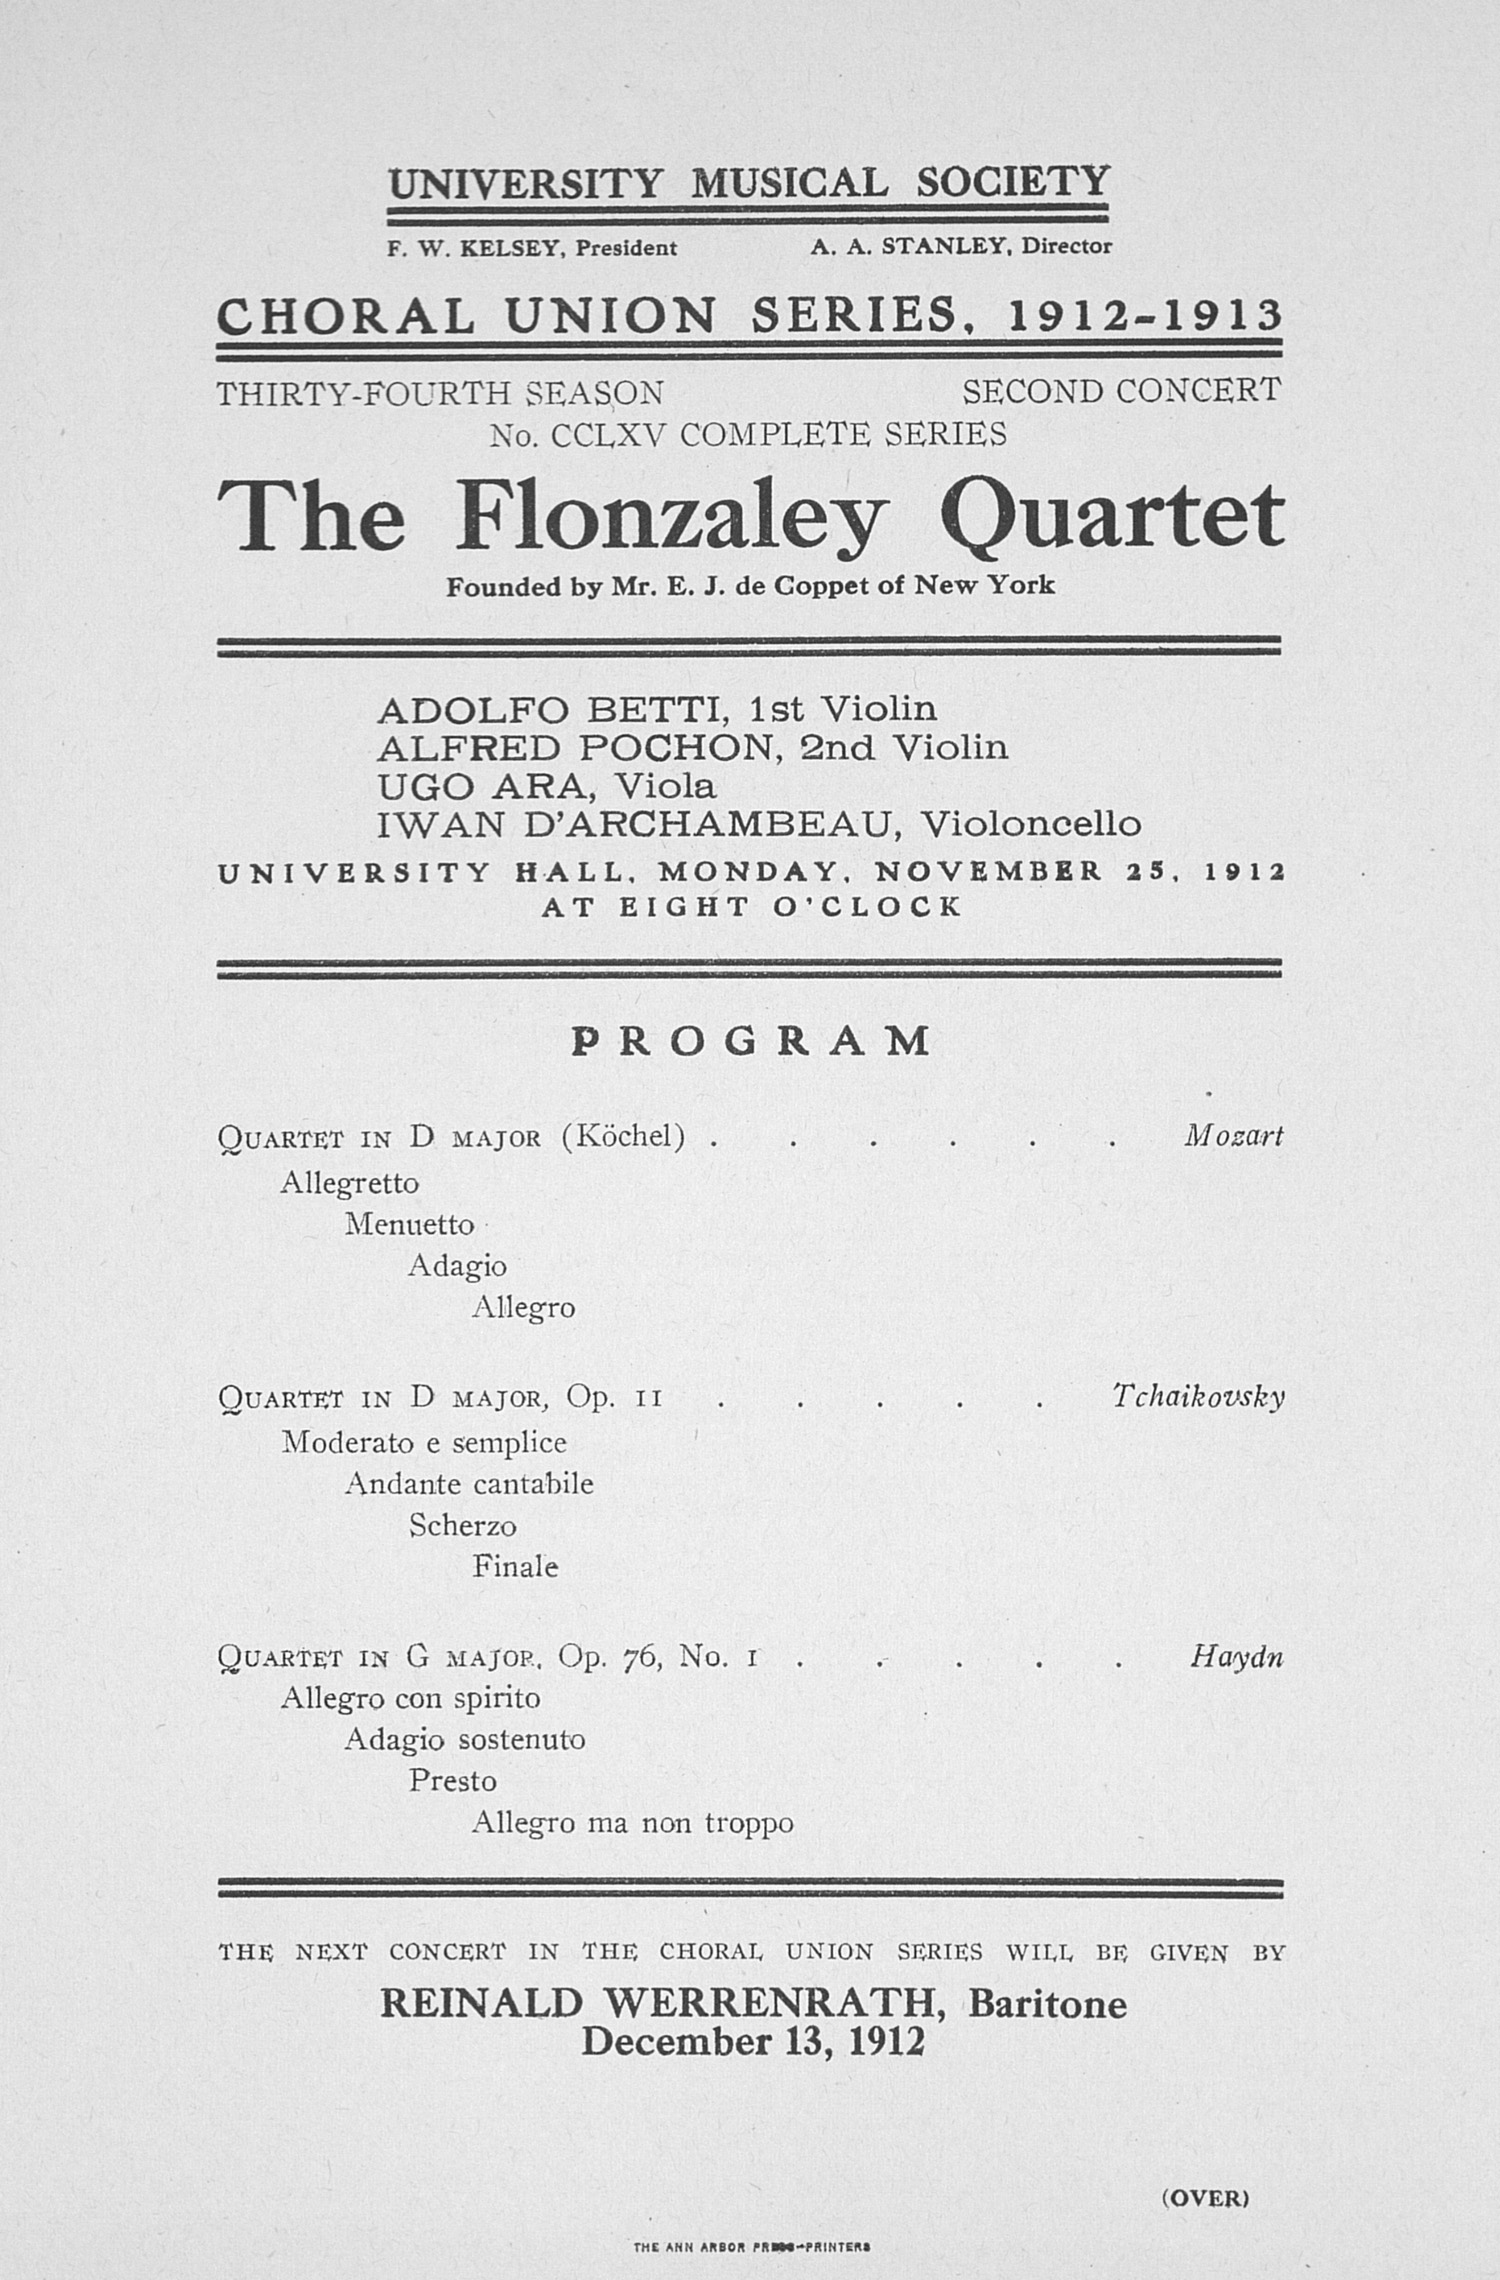 UMS Concert Program, November 25, 1912: The Flonzaley Quartet -- Mr. E. J. De Coppet image